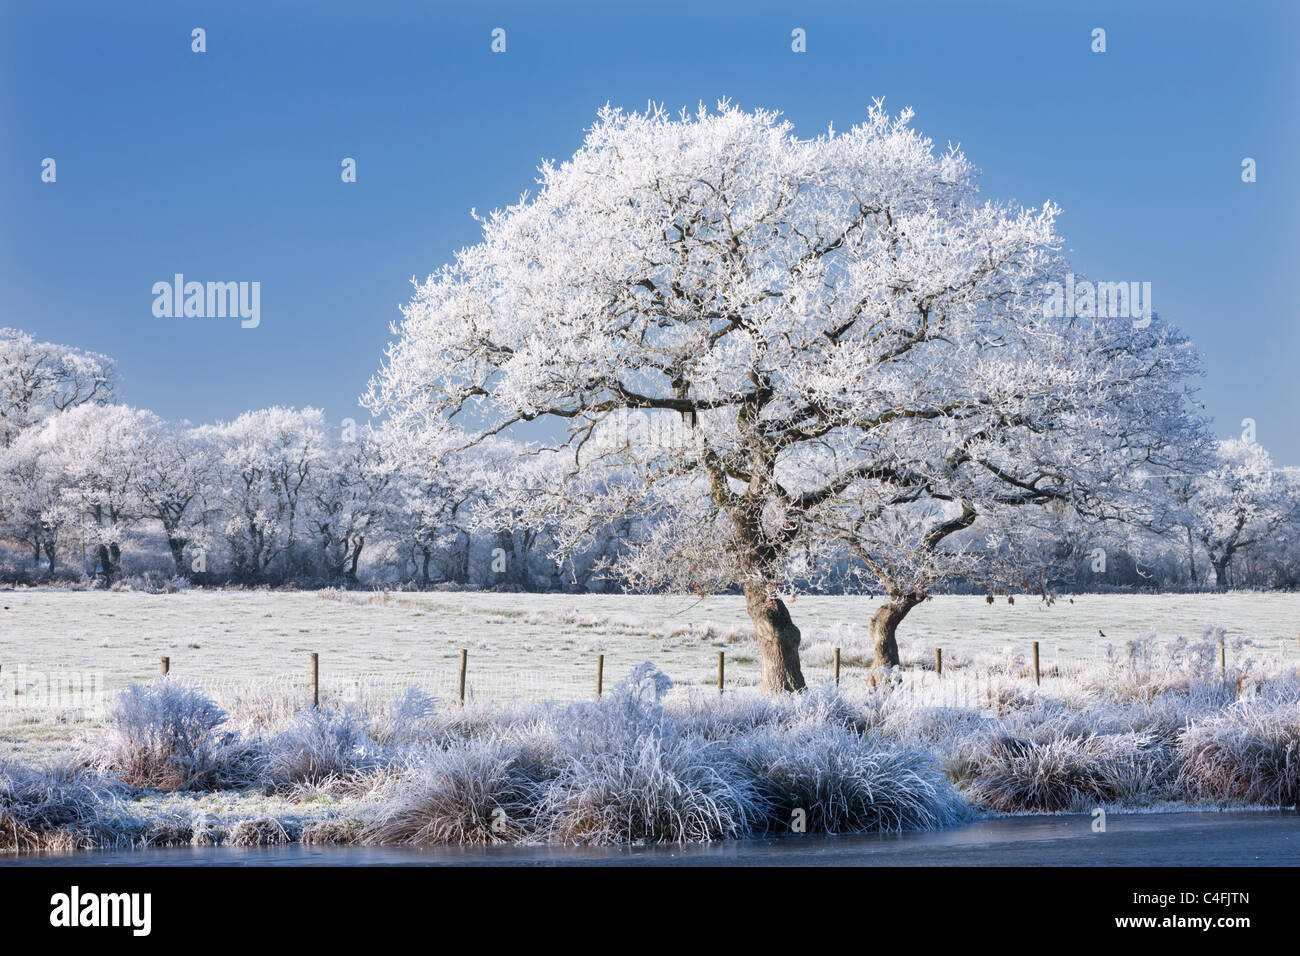 Hoar frosted tree, lake and fields, Morchard Road, Devon, England. Winter (December) 2010. - Stock Image